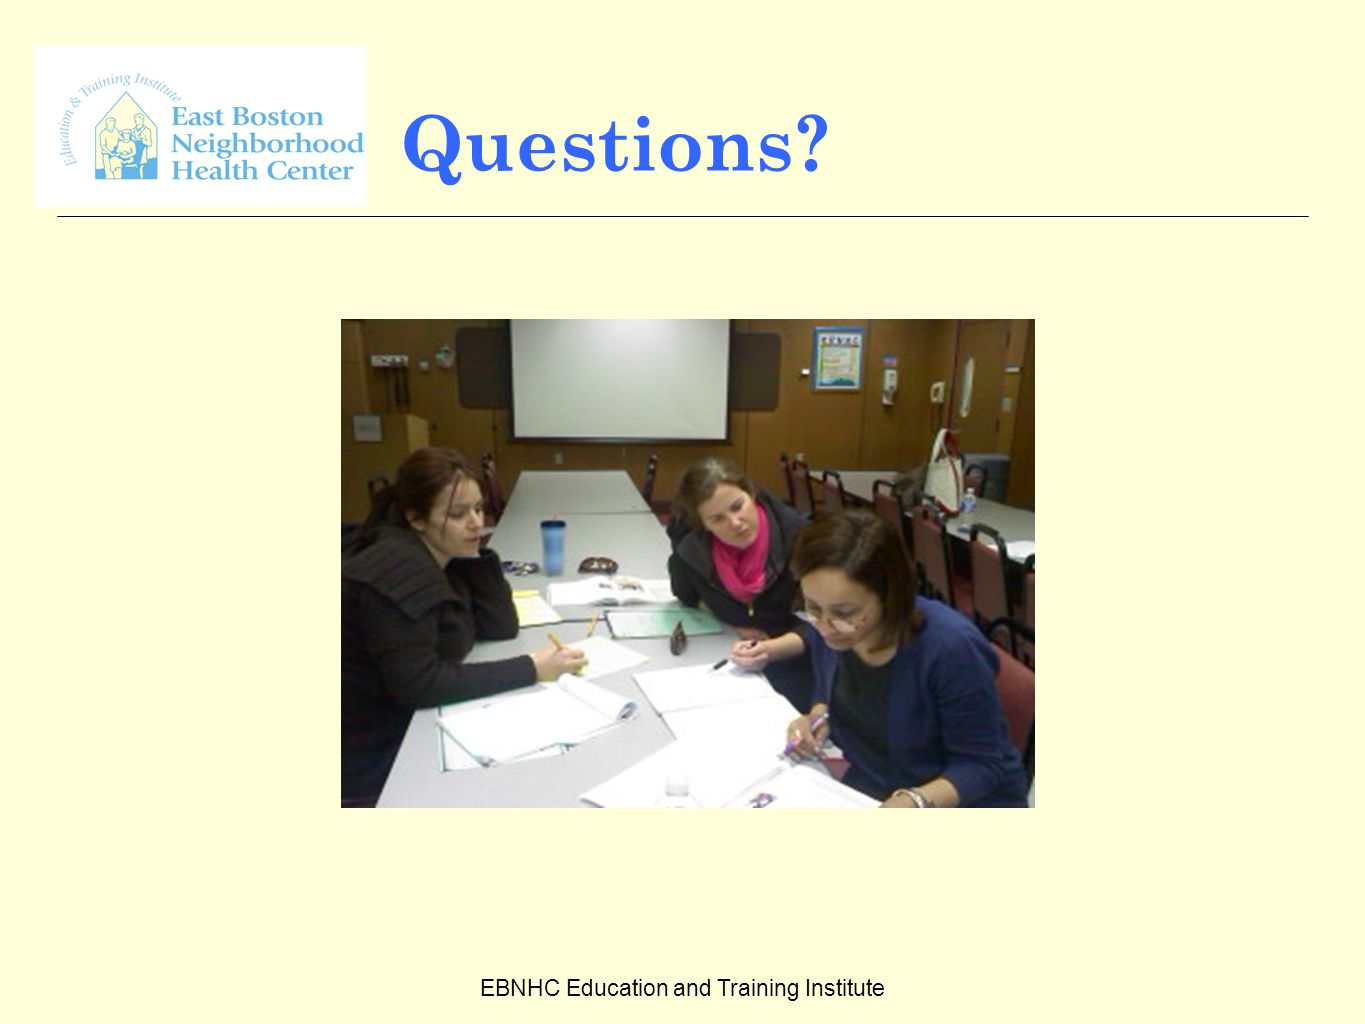 EBNHC Education and Training Institute Questions